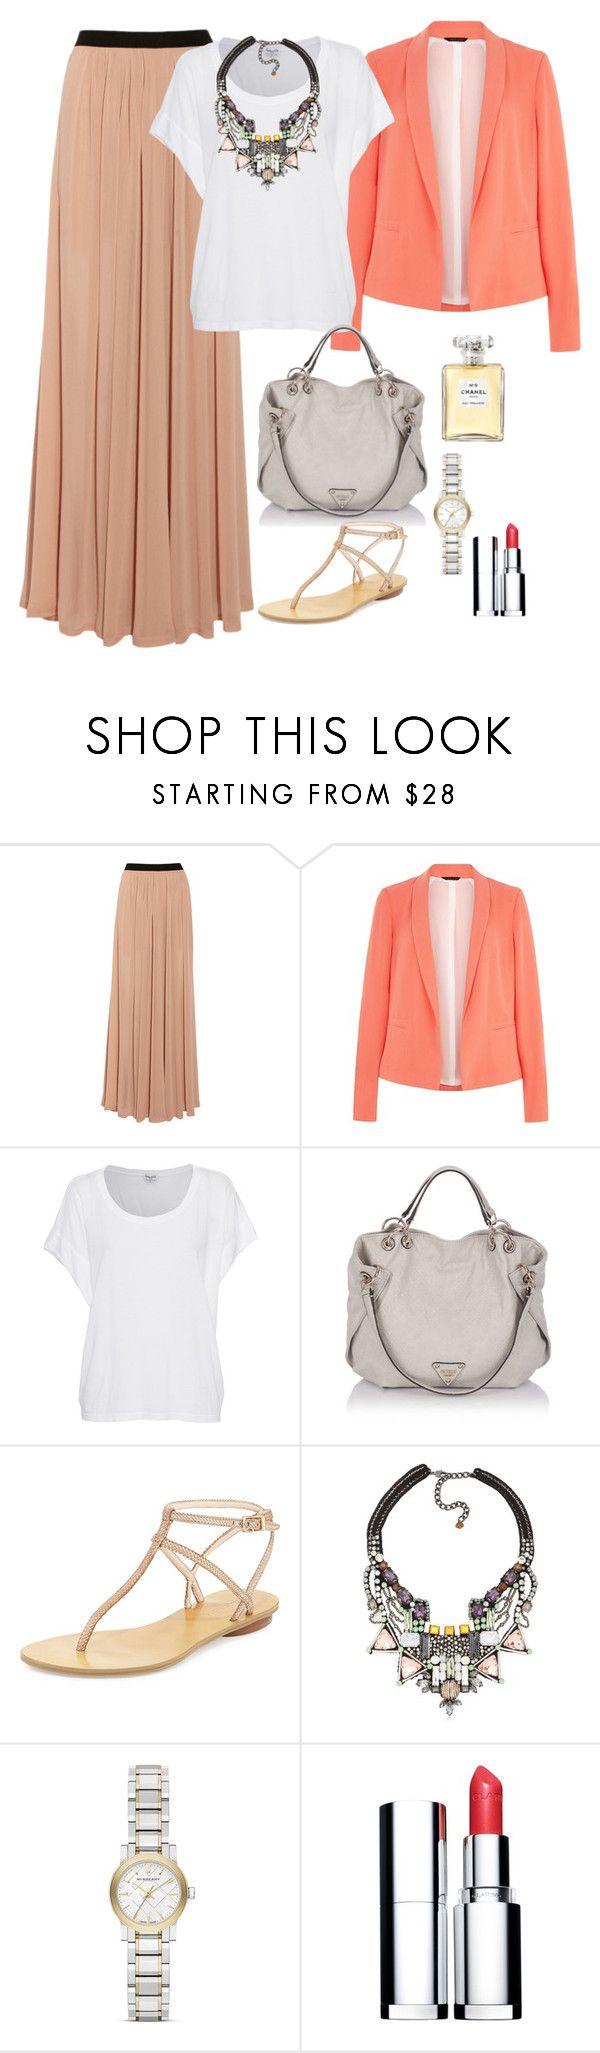 """""""Hijab style ✨"""" by fashionista-hijab ❤ liked on Polyvore featuring Enza Costa, Splendid, Pelle Moda, Nocturne, Chanel, Burberry and Clarins"""